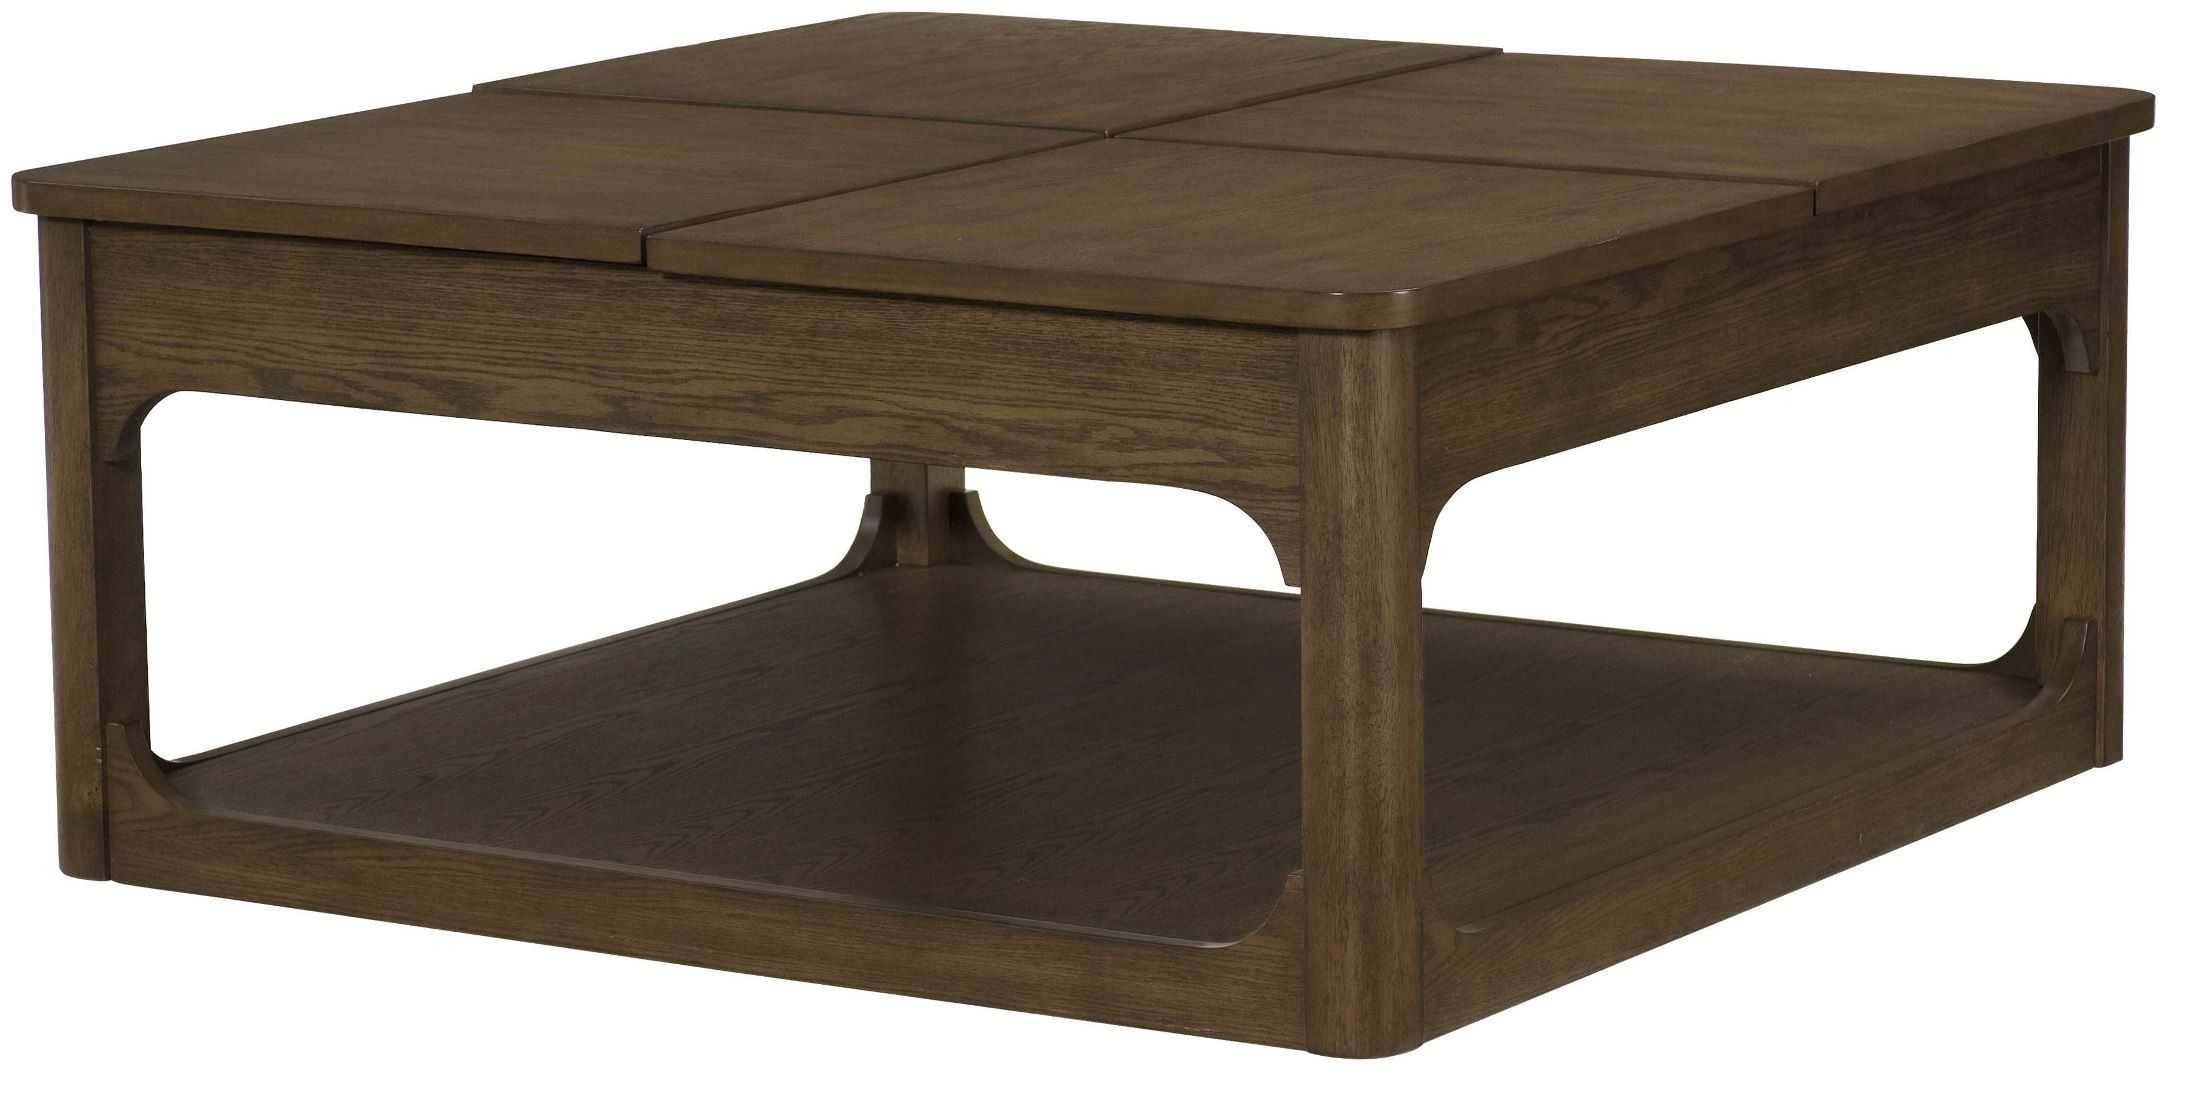 Facet Smoky Brown Oak Square Lift Top Cocktail Table From Hammary 438 912 Coleman Furniture